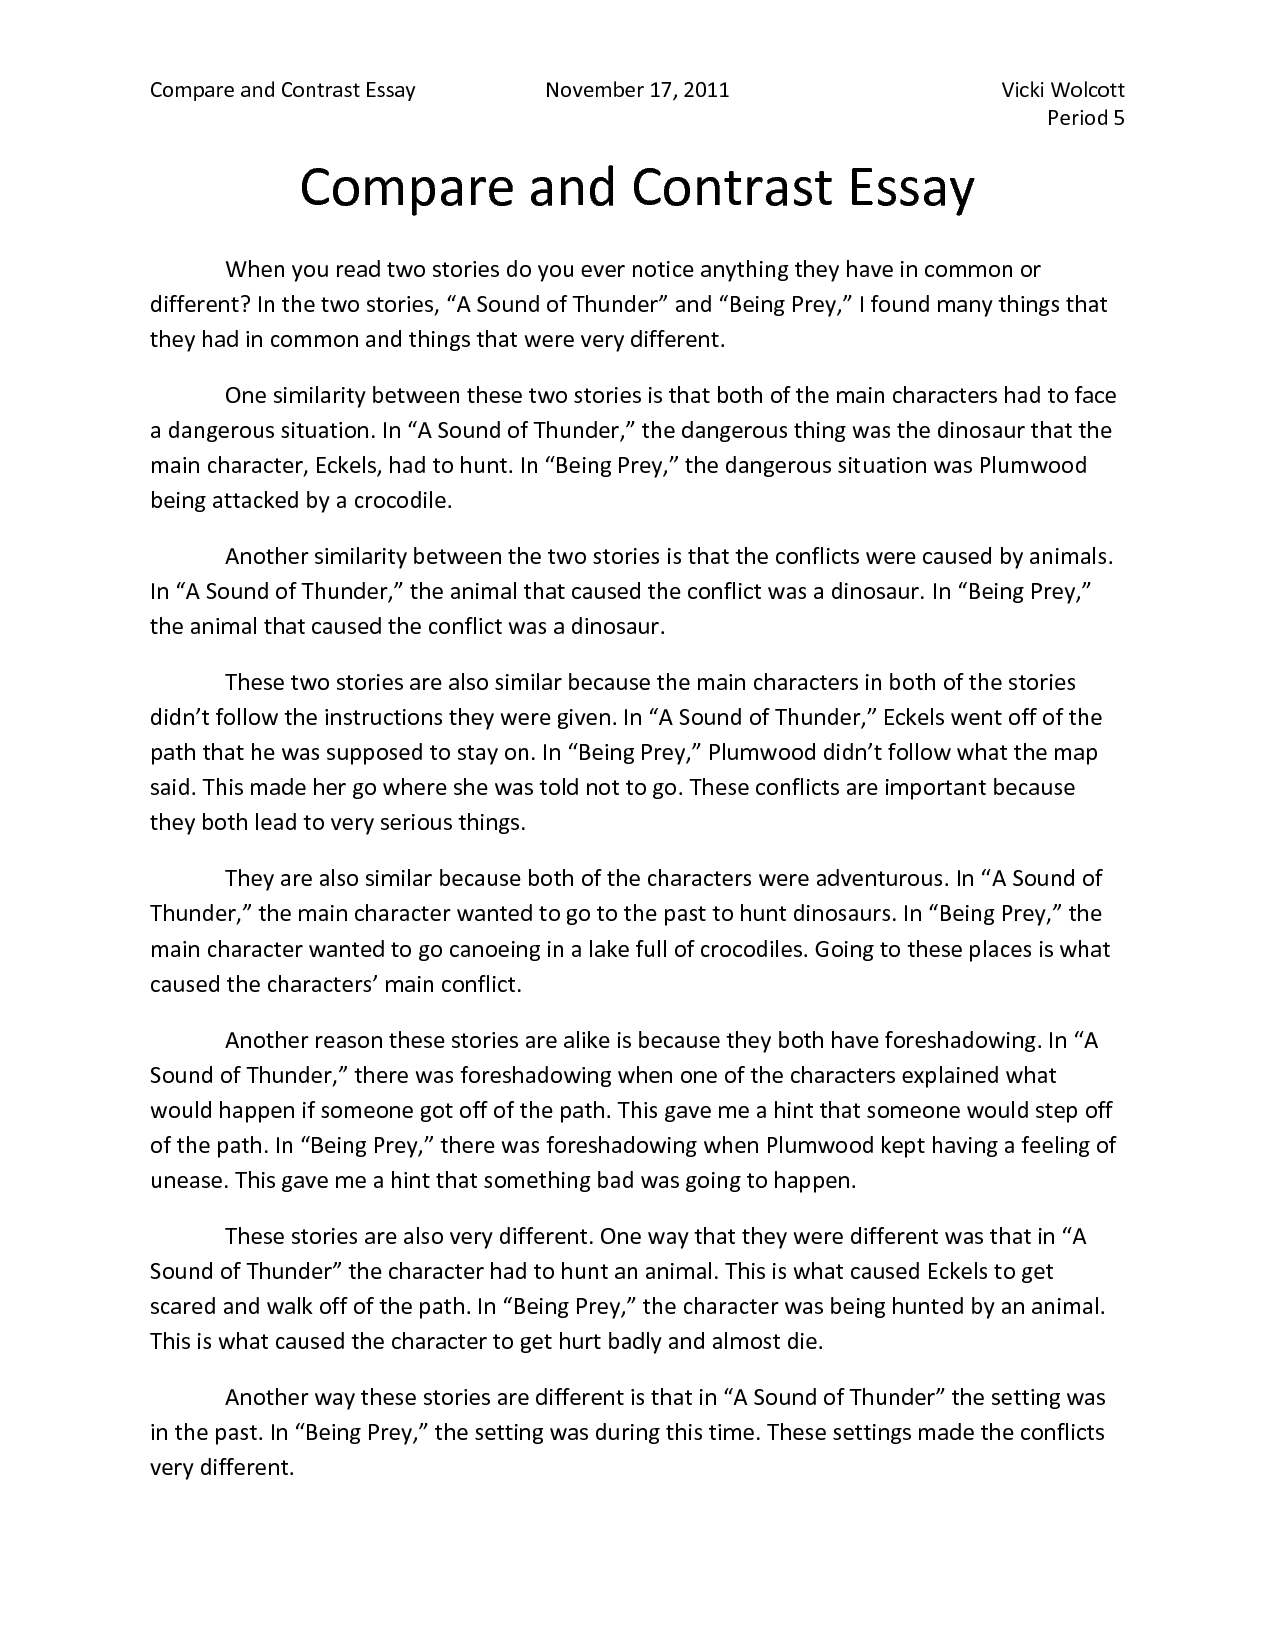 002 Contrast Essay Examples Example Perfect Essays Compare And Introduction How To Write For College Sat Do You Good Argumentative Remarkable High School Vs Free Full